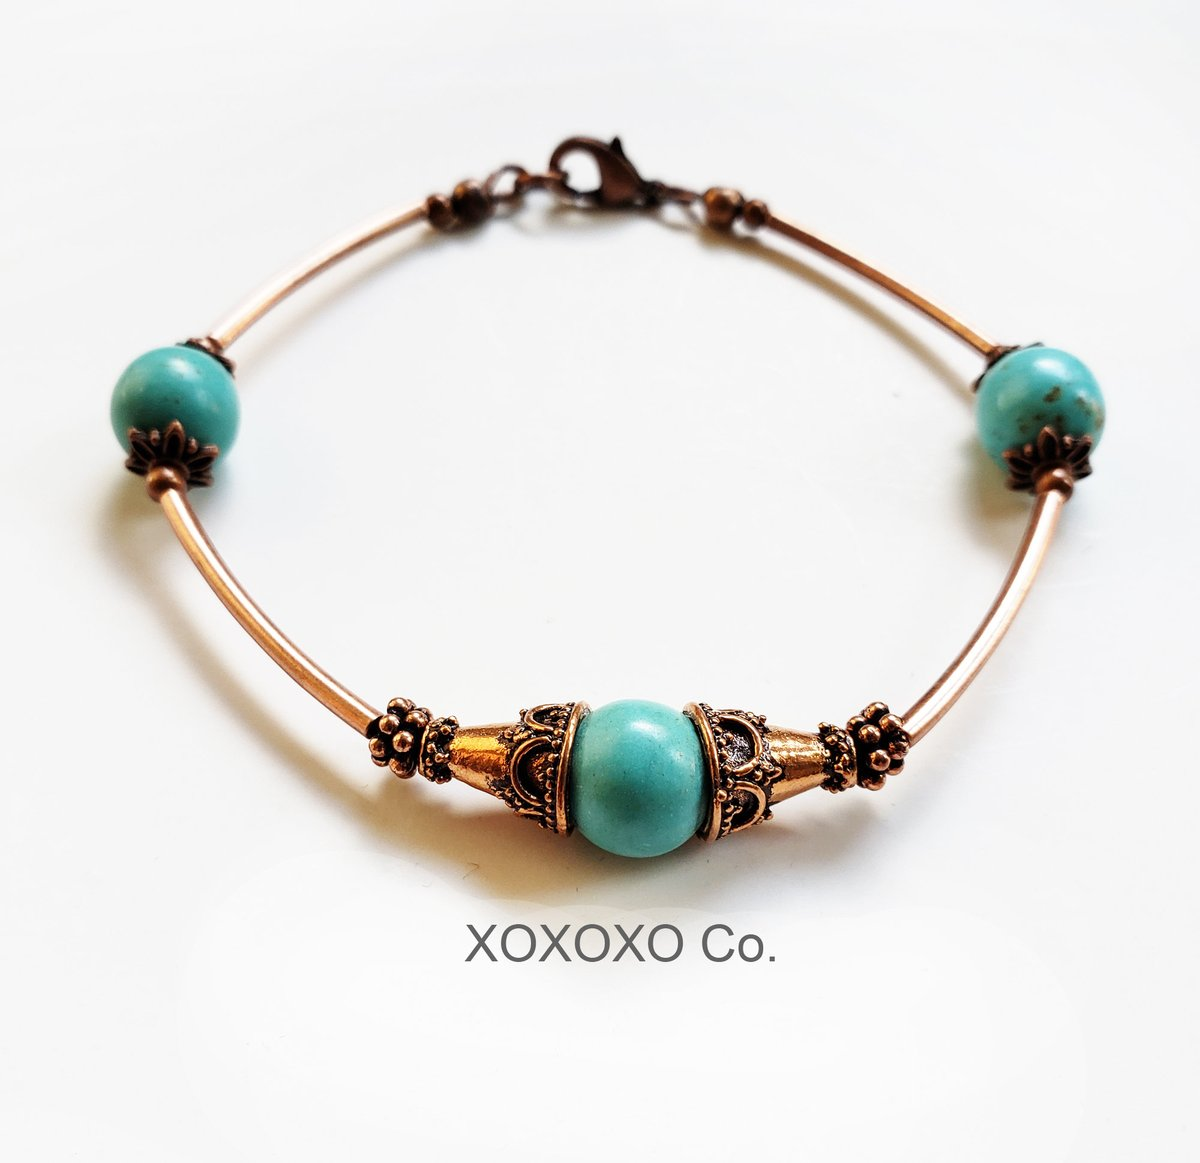 Copper Bracelet with Turquoise Beads and Copper Tube Beads  #Etsy #style #fashion #jewelryblogger #handmade #shopsmall #christmasgifts #giftsforher #handmadejewelry